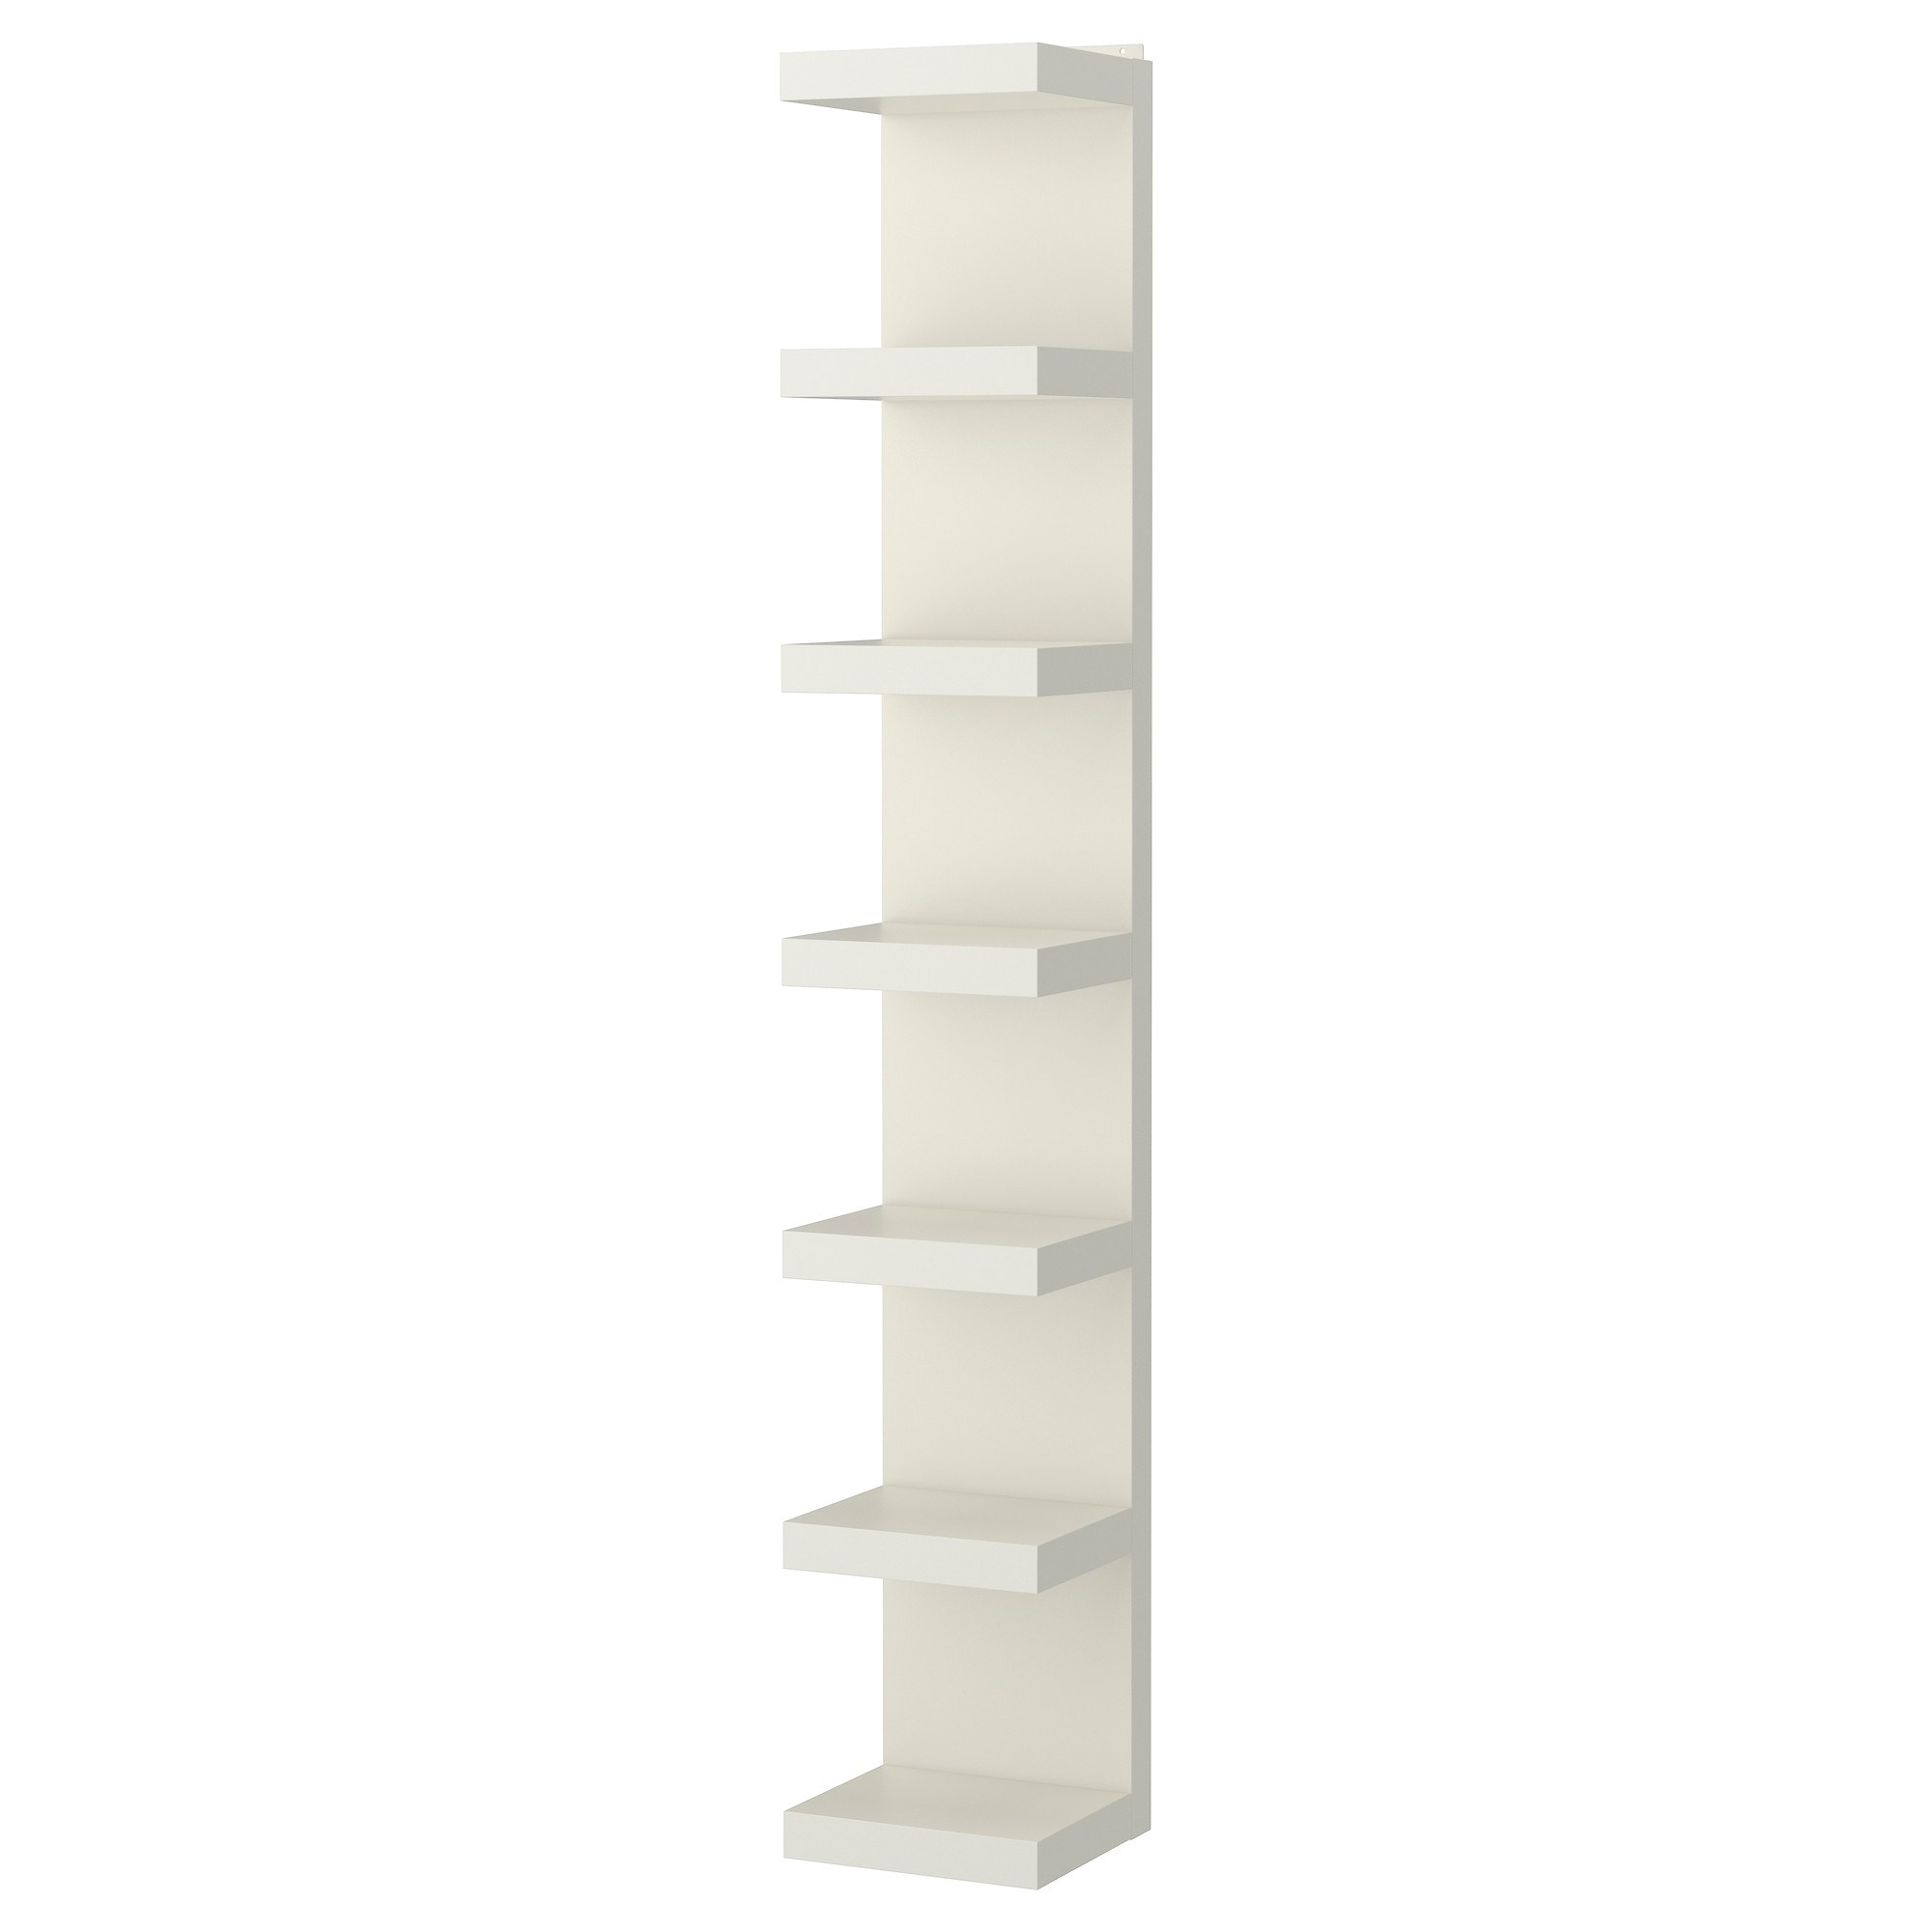 LACK shelving unit white 30x190 cm